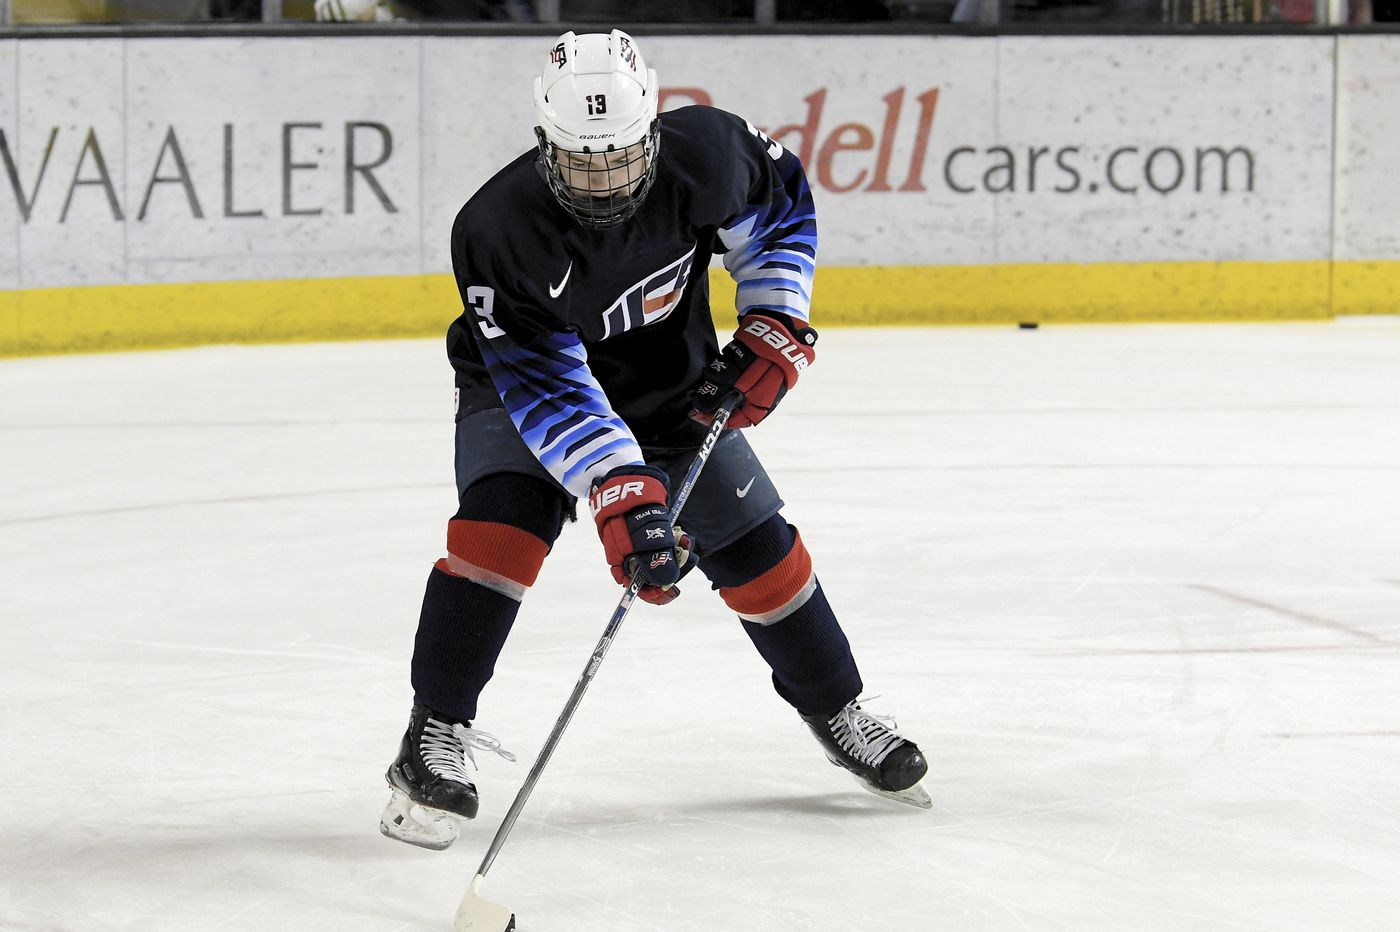 If Cole Caufield is available in NHL draft, his size will not dissuade Flyers